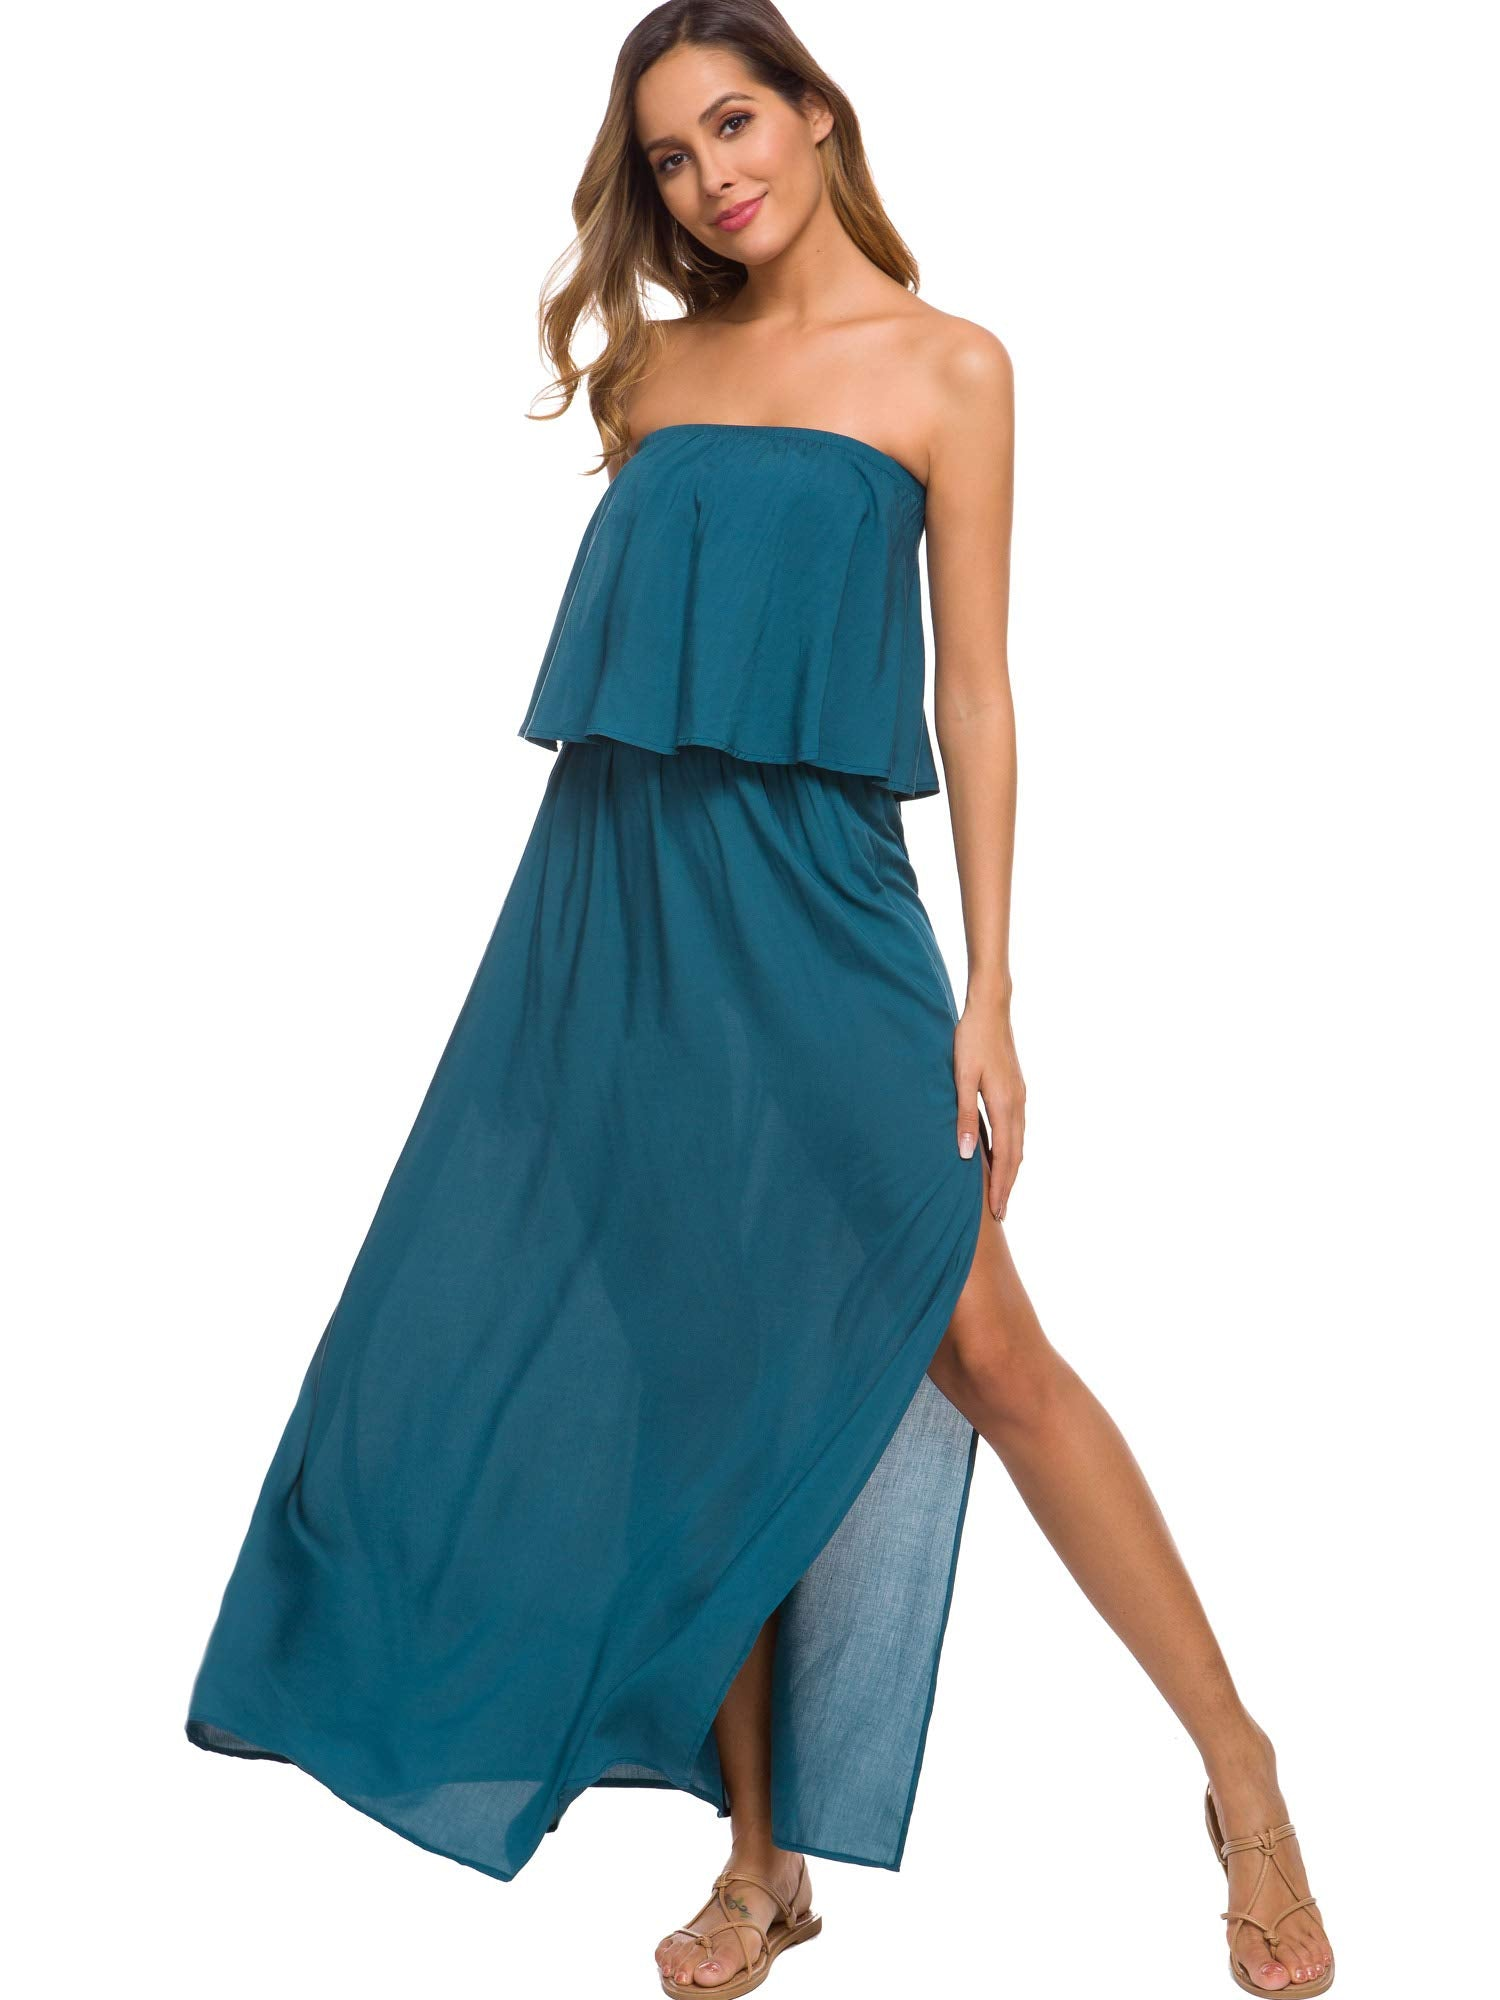 Women's Strapless Maxi Dress Petite Length Cotton Ruffle Boho Side Split Long Dress with Pockets (S, Teal) - wiihuu